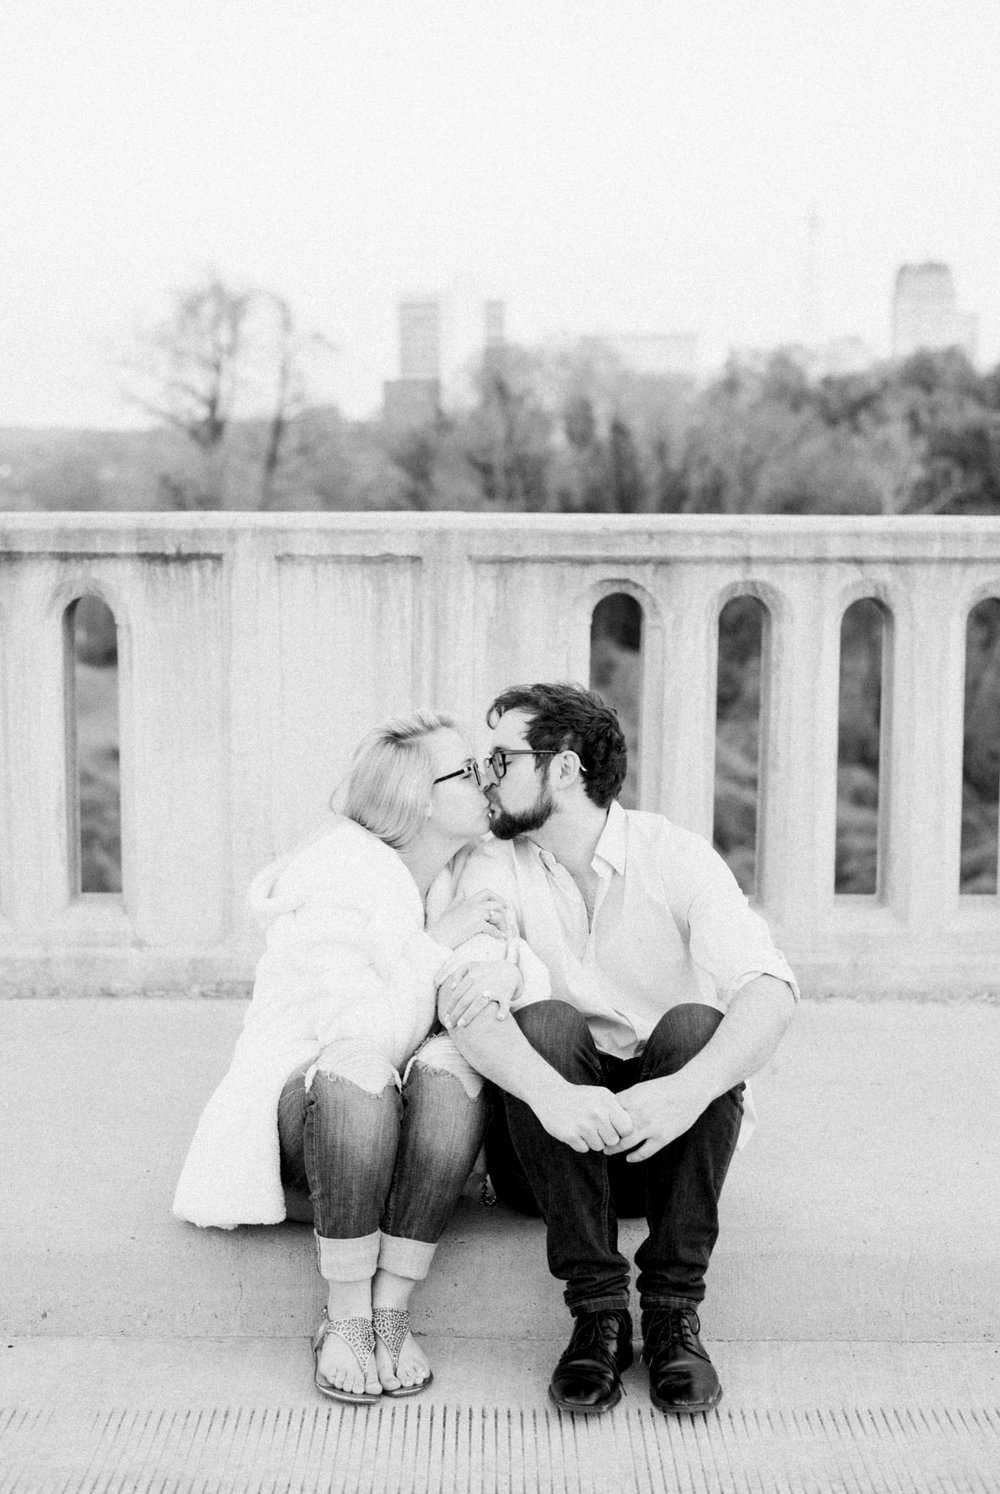 LaunceTarah_VirginiaWeddingPhotographer_EngagementSession_LynchburgVA_DowntownLynchburg_SpringEngagement 31.jpg